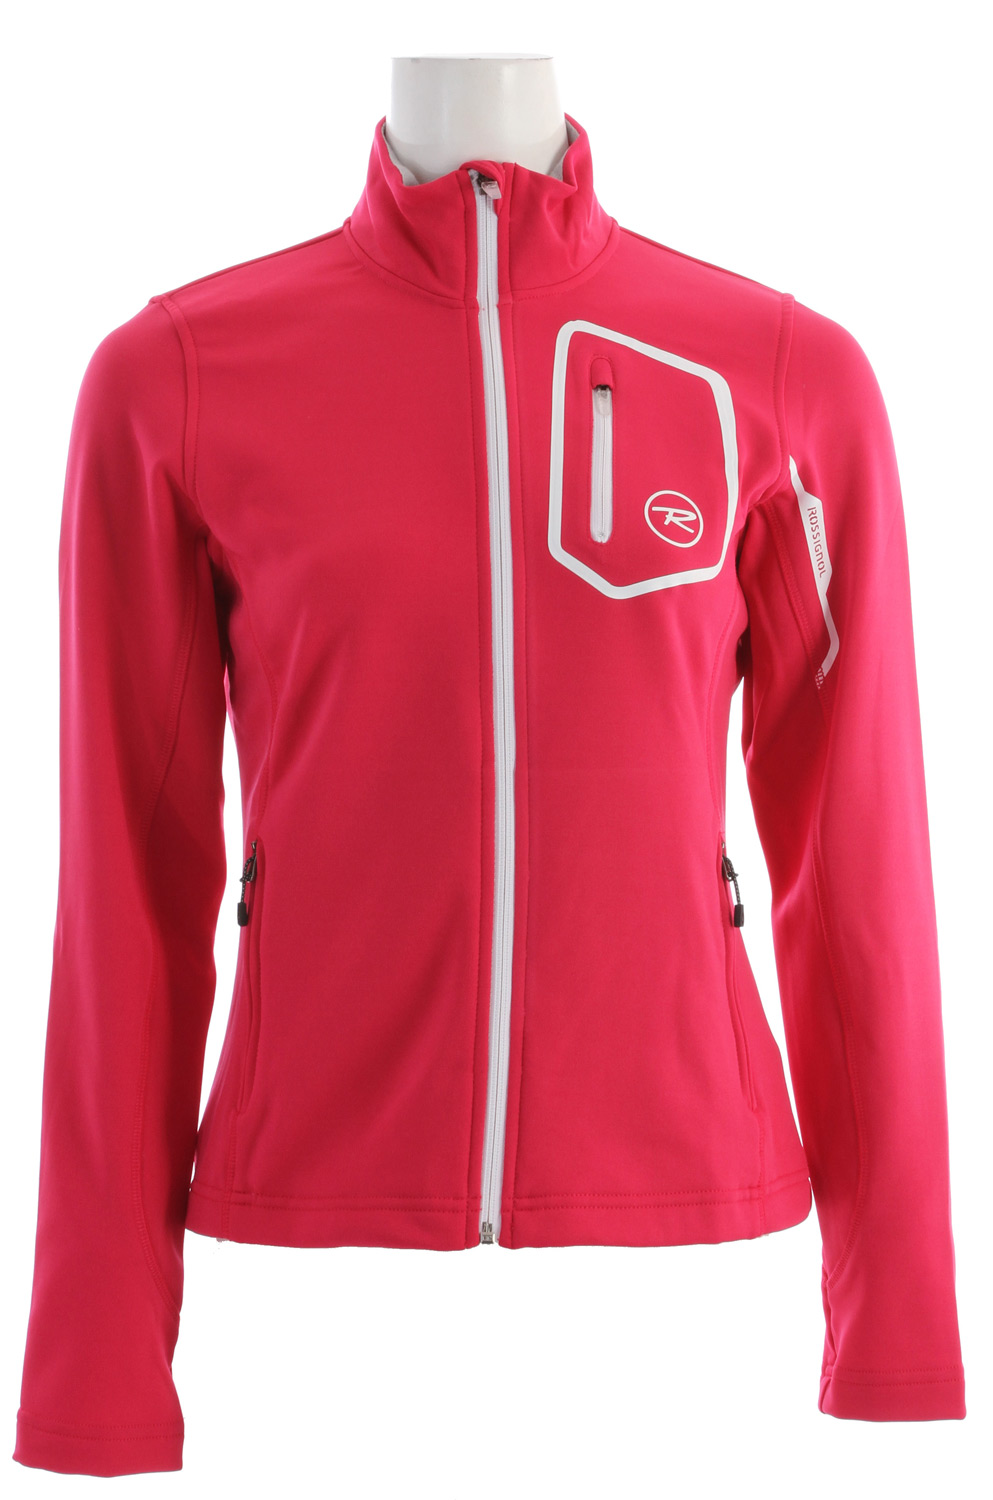 Rossignol Clim Full Zip Softshell Jacket Cochineal - $77.95